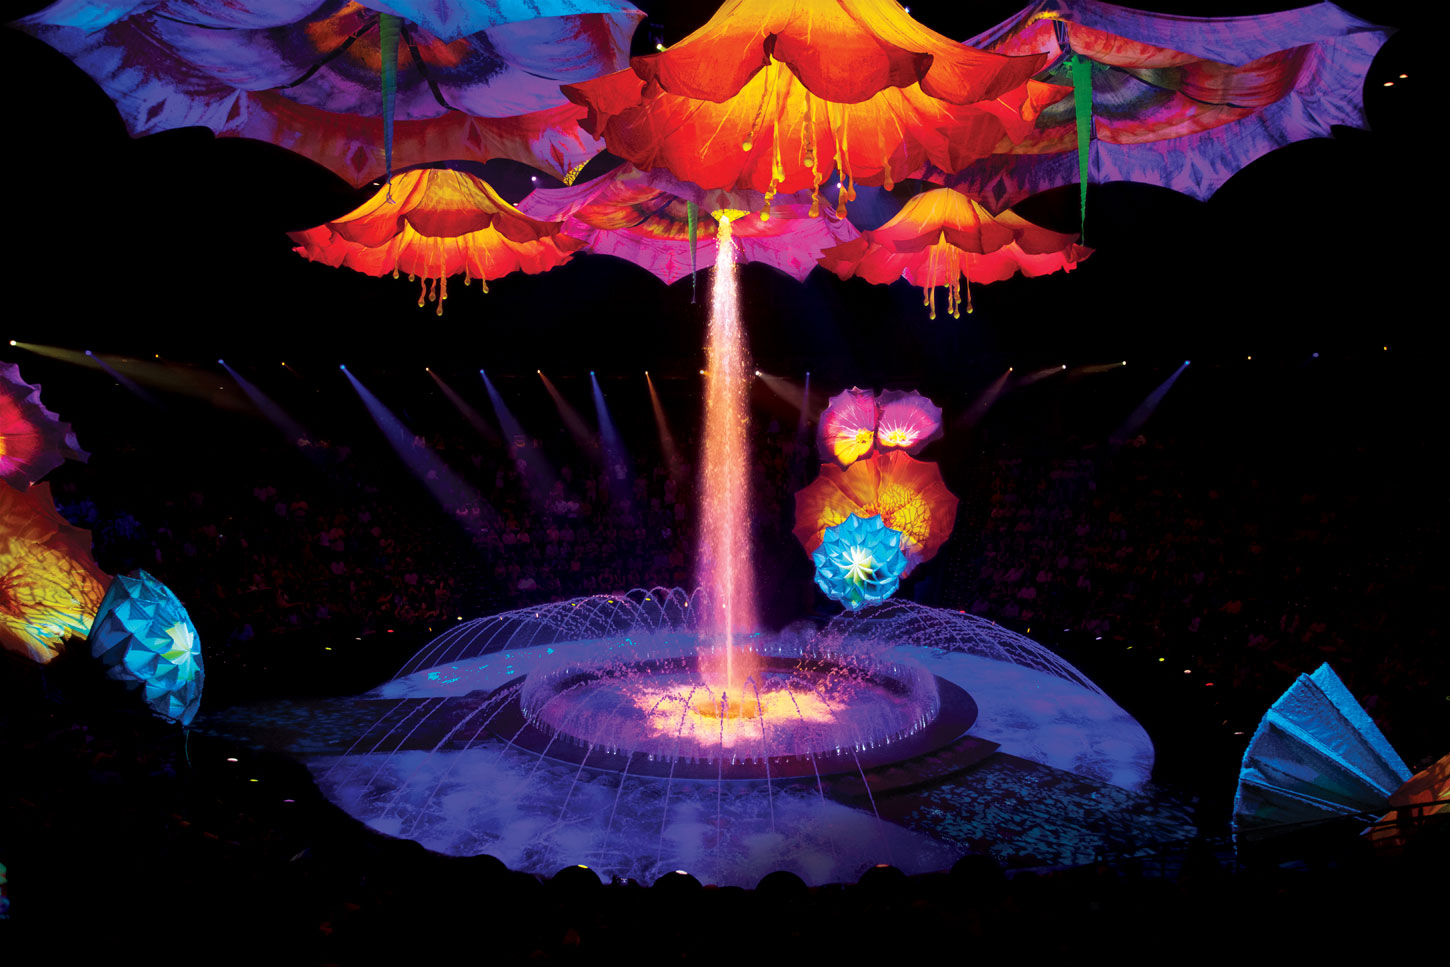 Le Rêve at Wynn features a unique water stage surrounded by seats on all sides. Photo courtesy of Wynn Las Vegas.